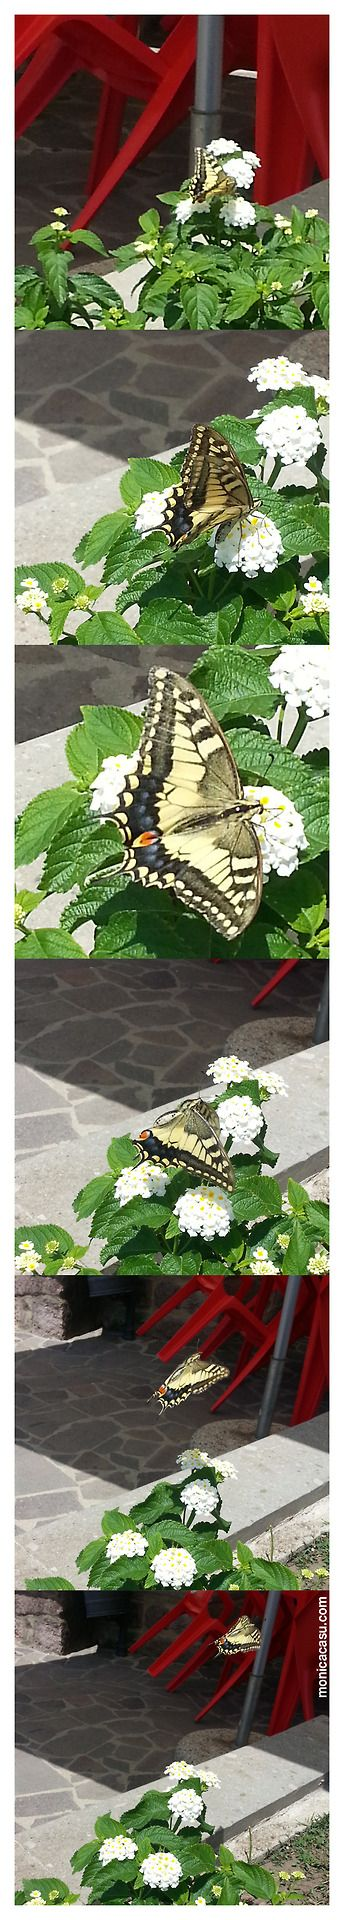 YELLOW BUTTERFLY PHOTOSHOOT. #monicacasu @Monica Casu #butterfly